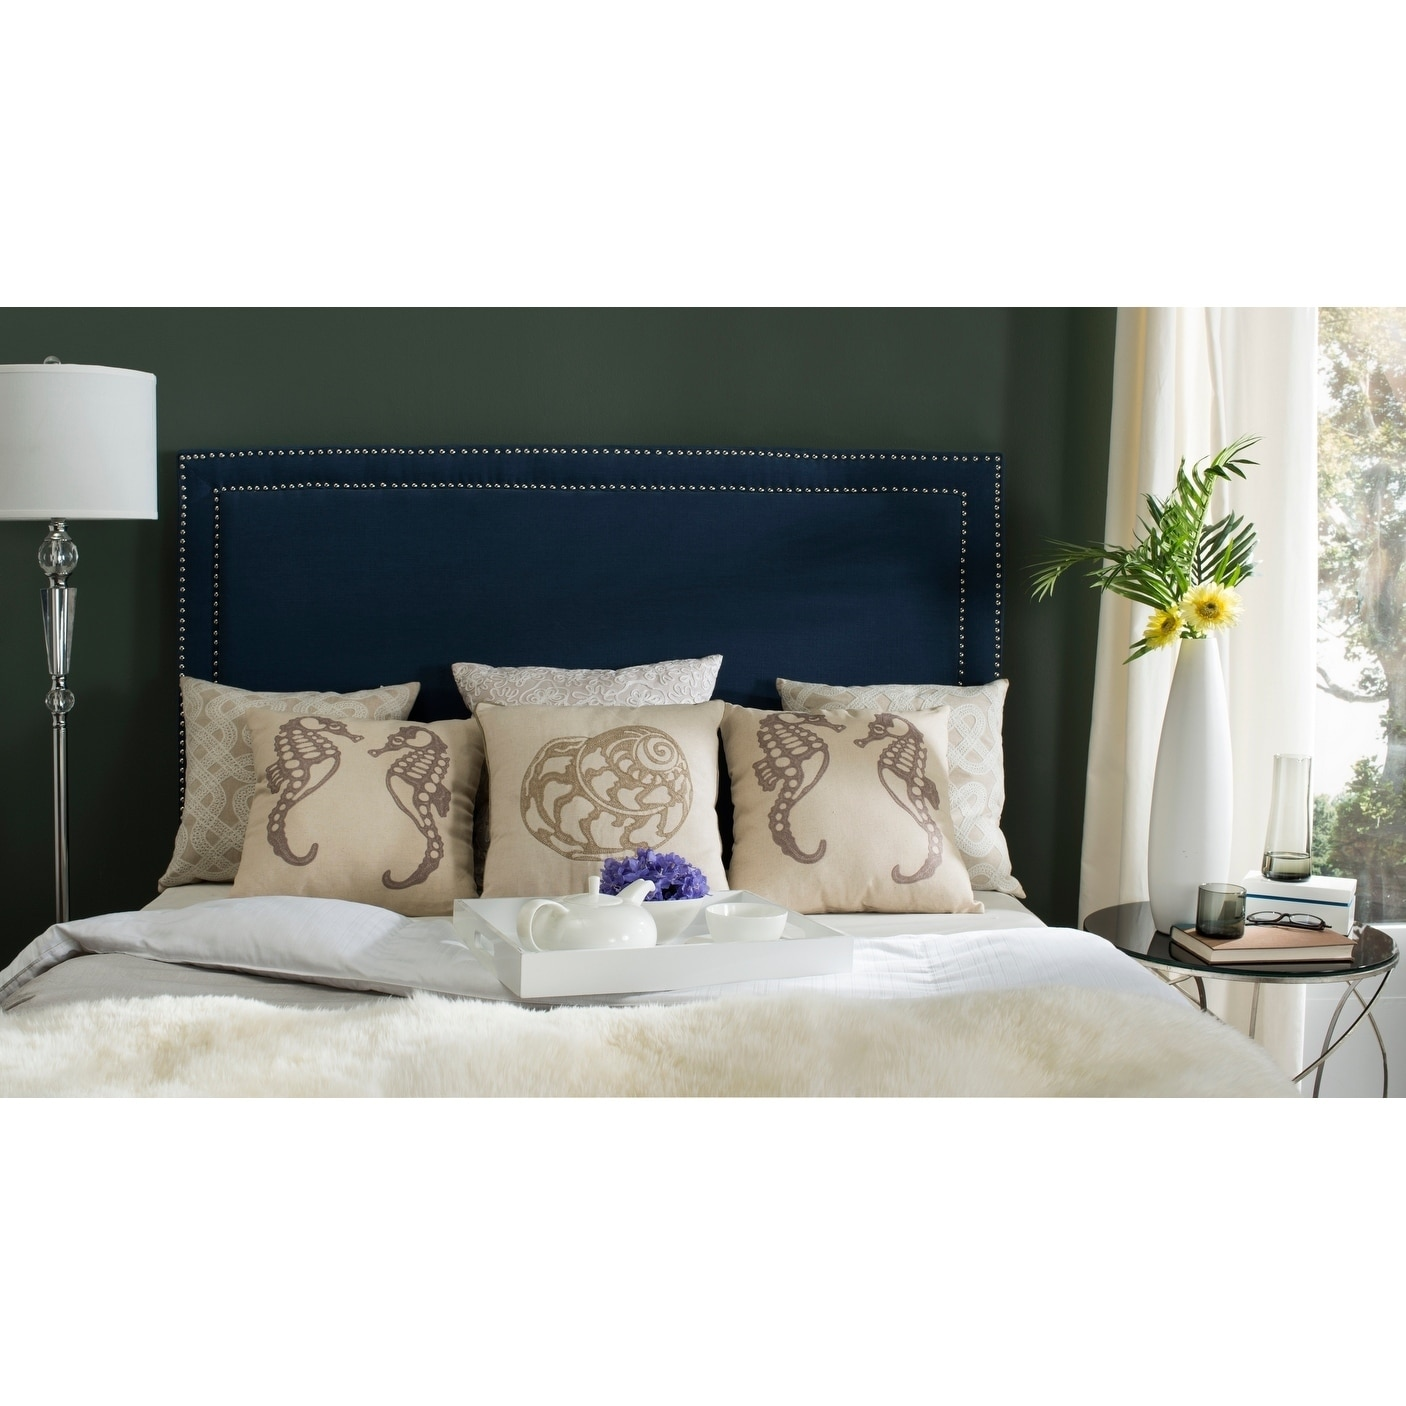 Picture of: Shop Black Friday Deals On Safavieh Cory Navy Upholstered Headboard Silver Nailhead King Overstock 10988914